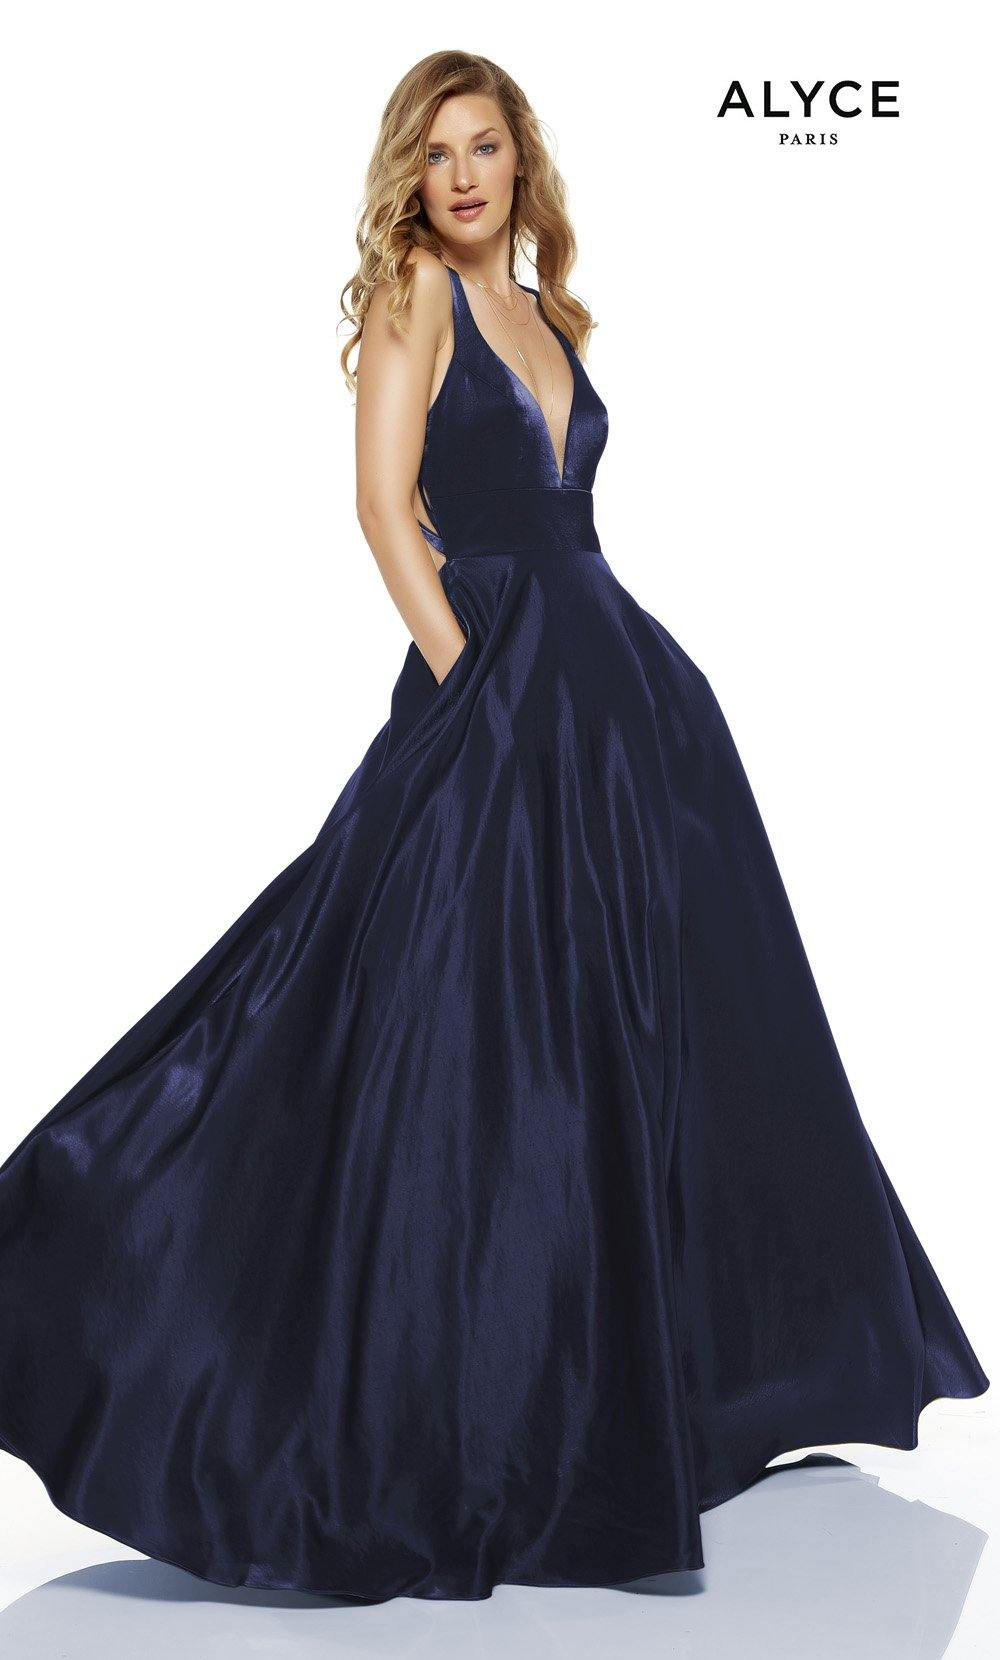 Navy red-carpet gown with pockets and a plunging neckline